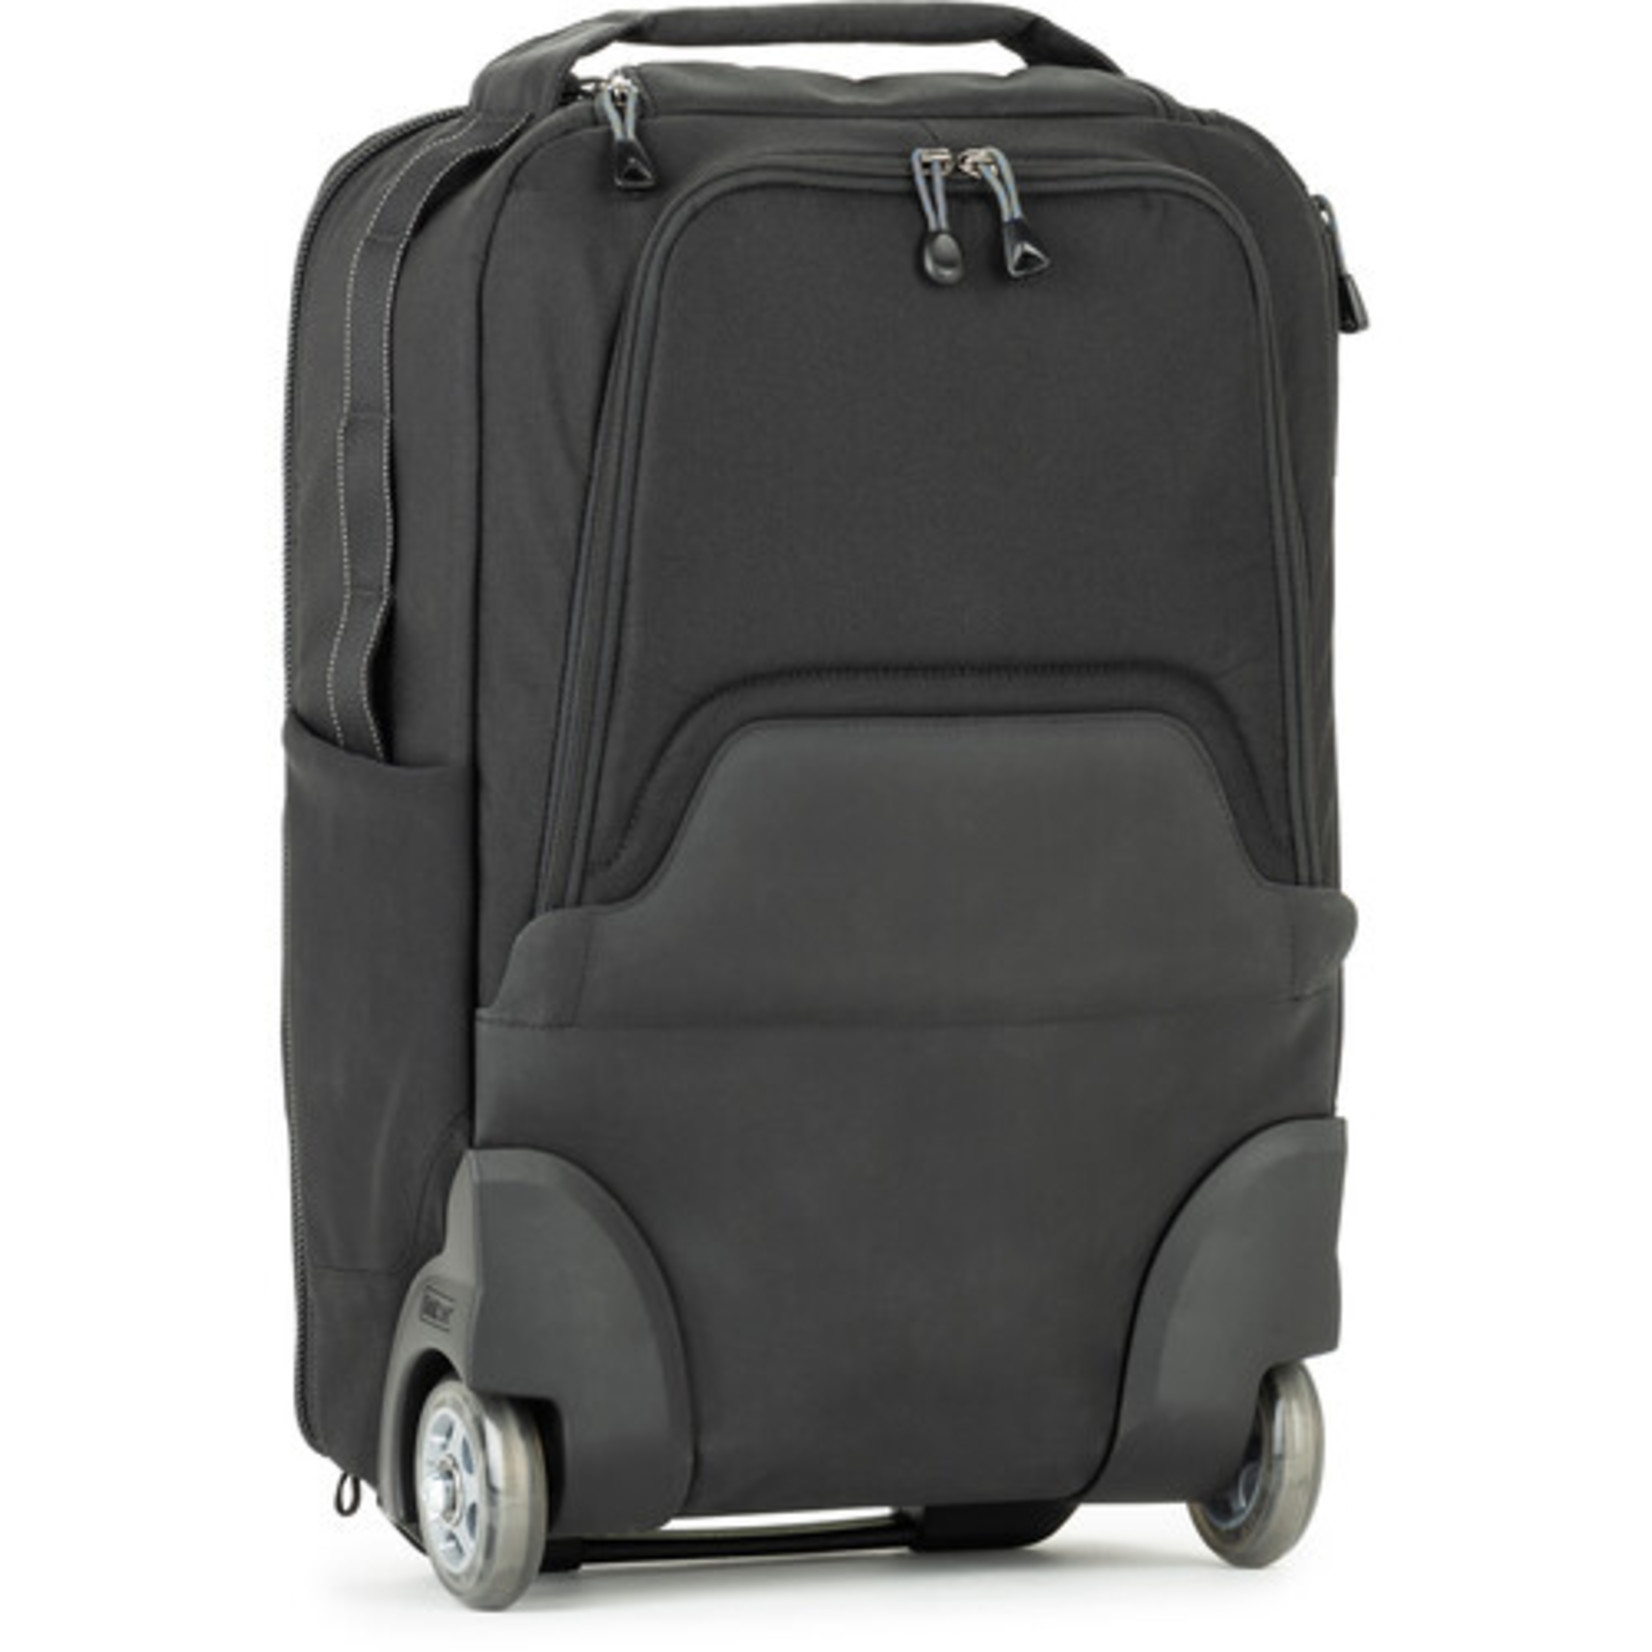 ThinkTank Essentials Covertable Roll Backpack